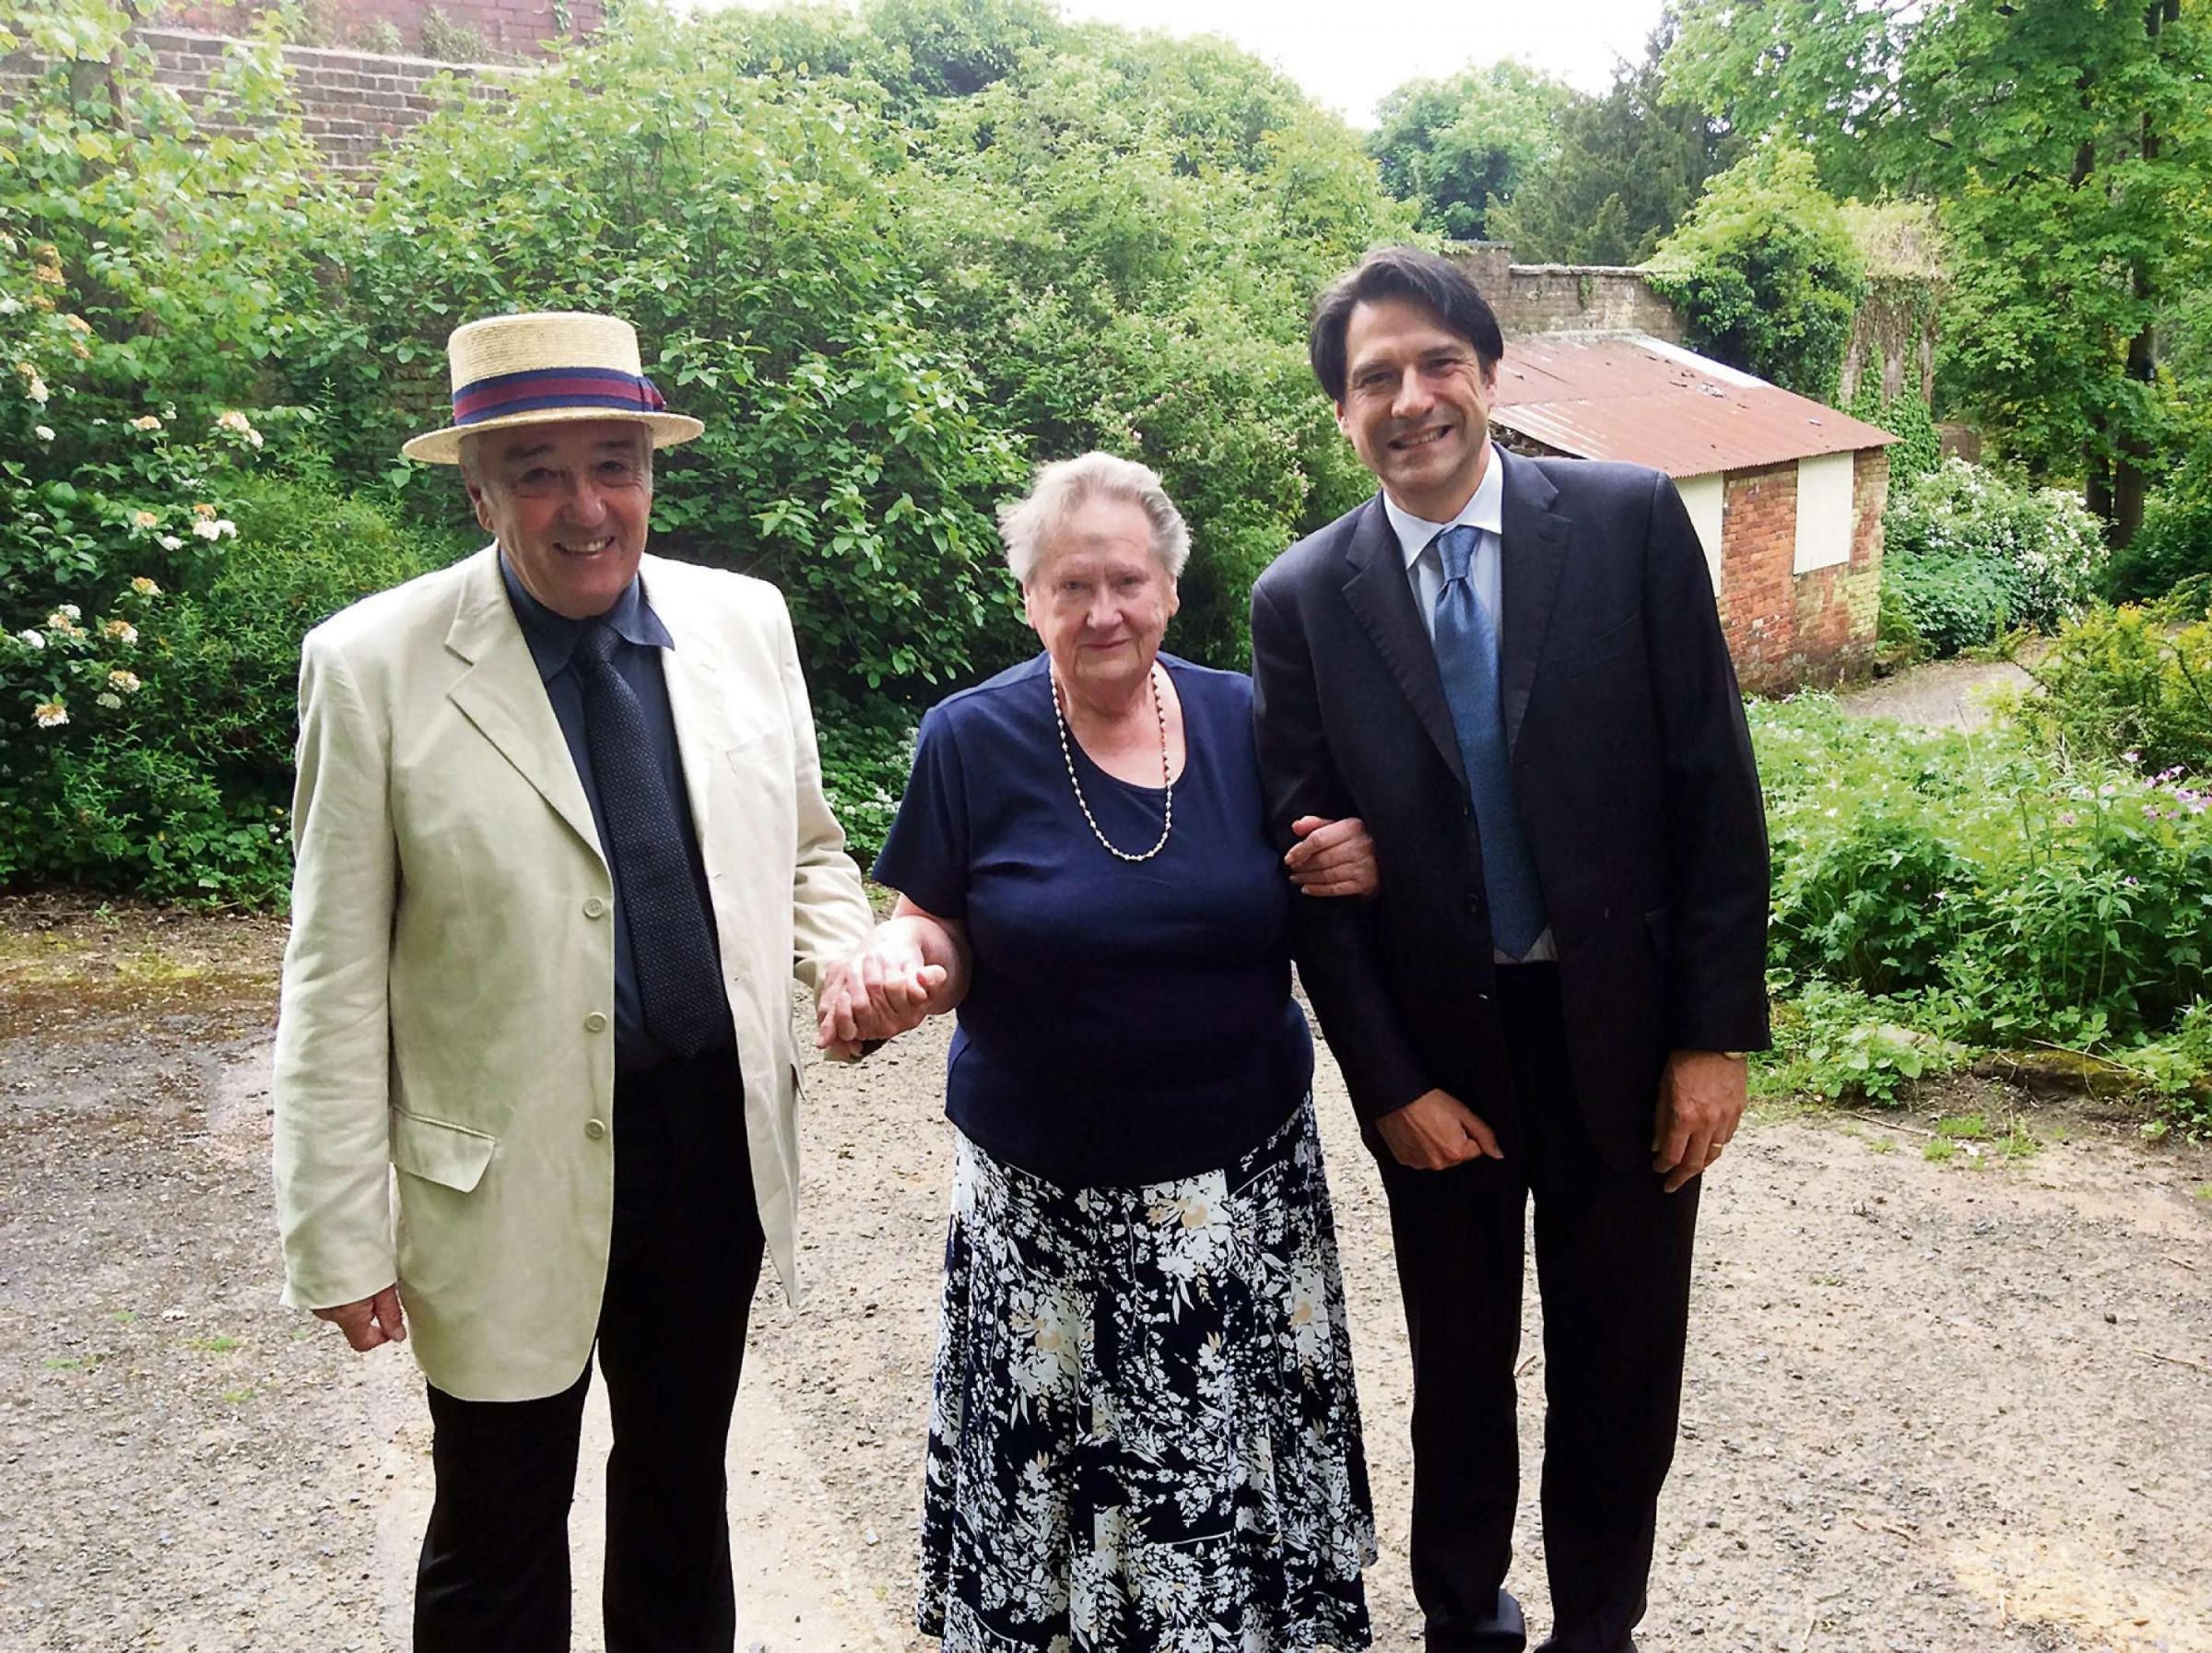 Save our garden: Mick Freer, Marianne Diller and James Morris MP.